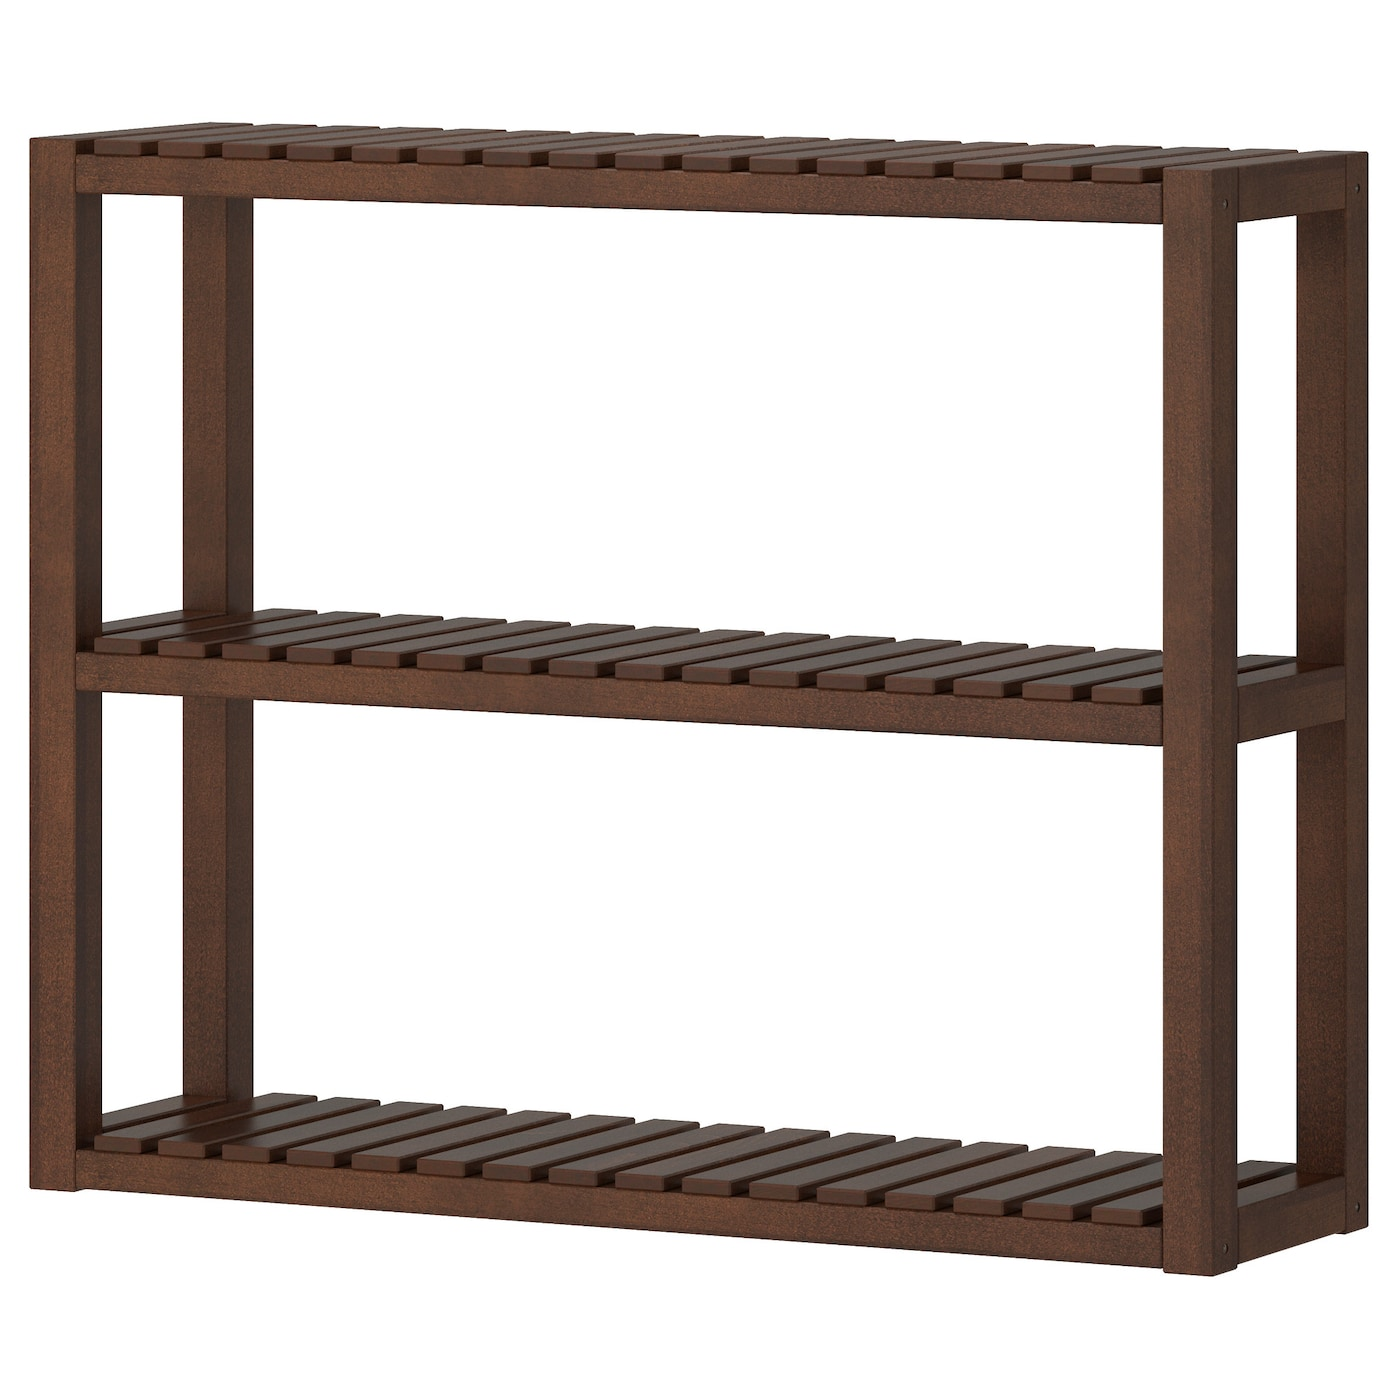 IKEA MOLGER wall shelf The open shelves give an easy overview and easy reach.